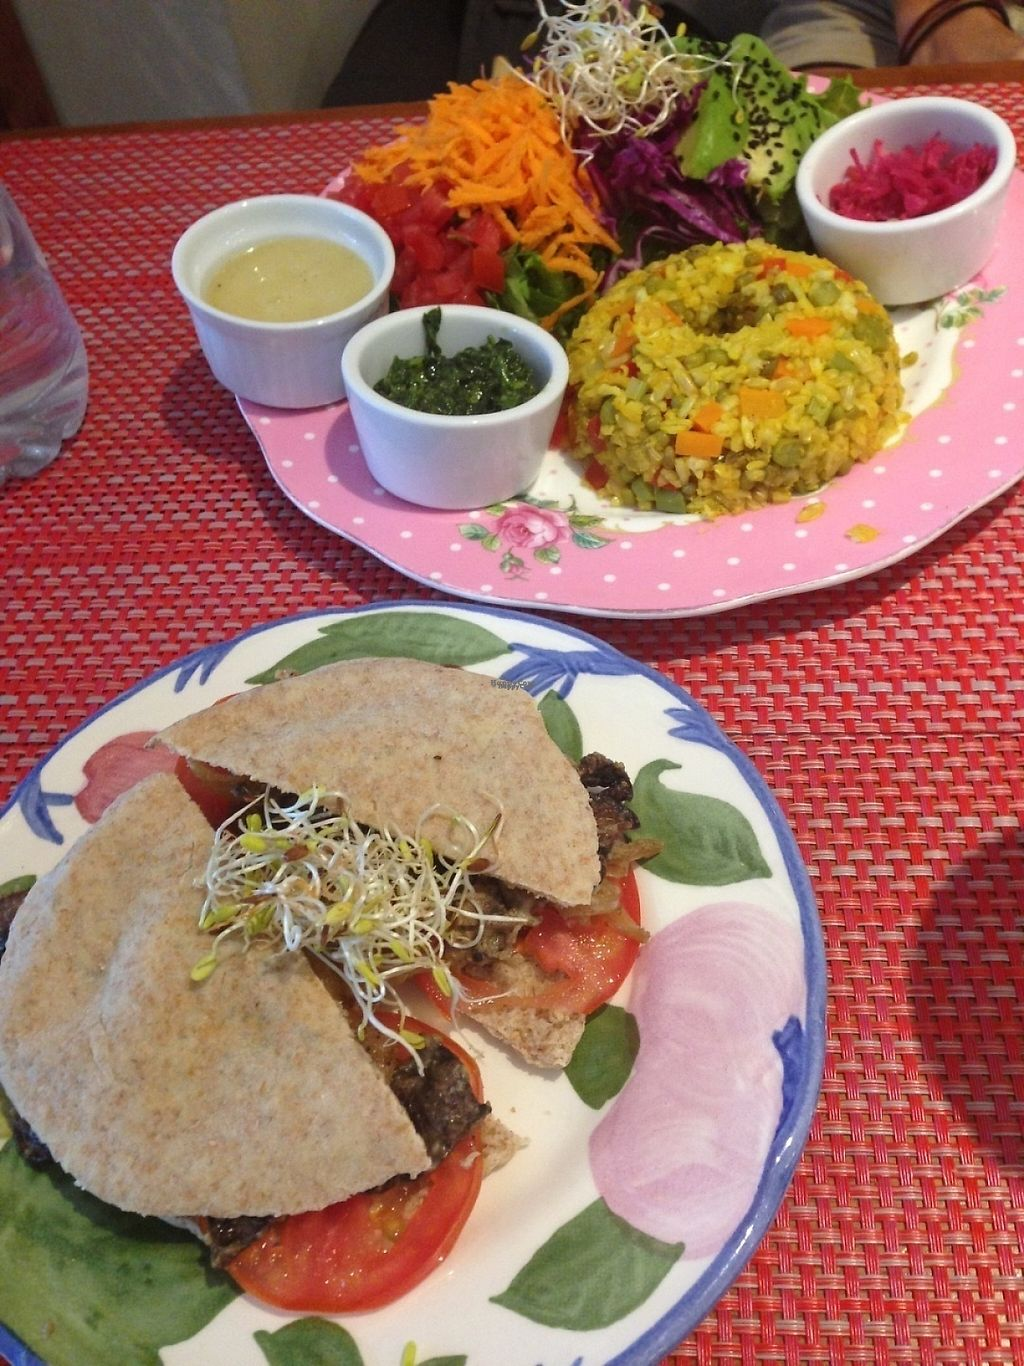 "Photo of Raw Cafe - Independencia  by <a href=""/members/profile/EmilyNoelle"">EmilyNoelle</a> <br/>Portobello sandwich and kitchari  <br/> April 1, 2017  - <a href='/contact/abuse/image/41640/243462'>Report</a>"